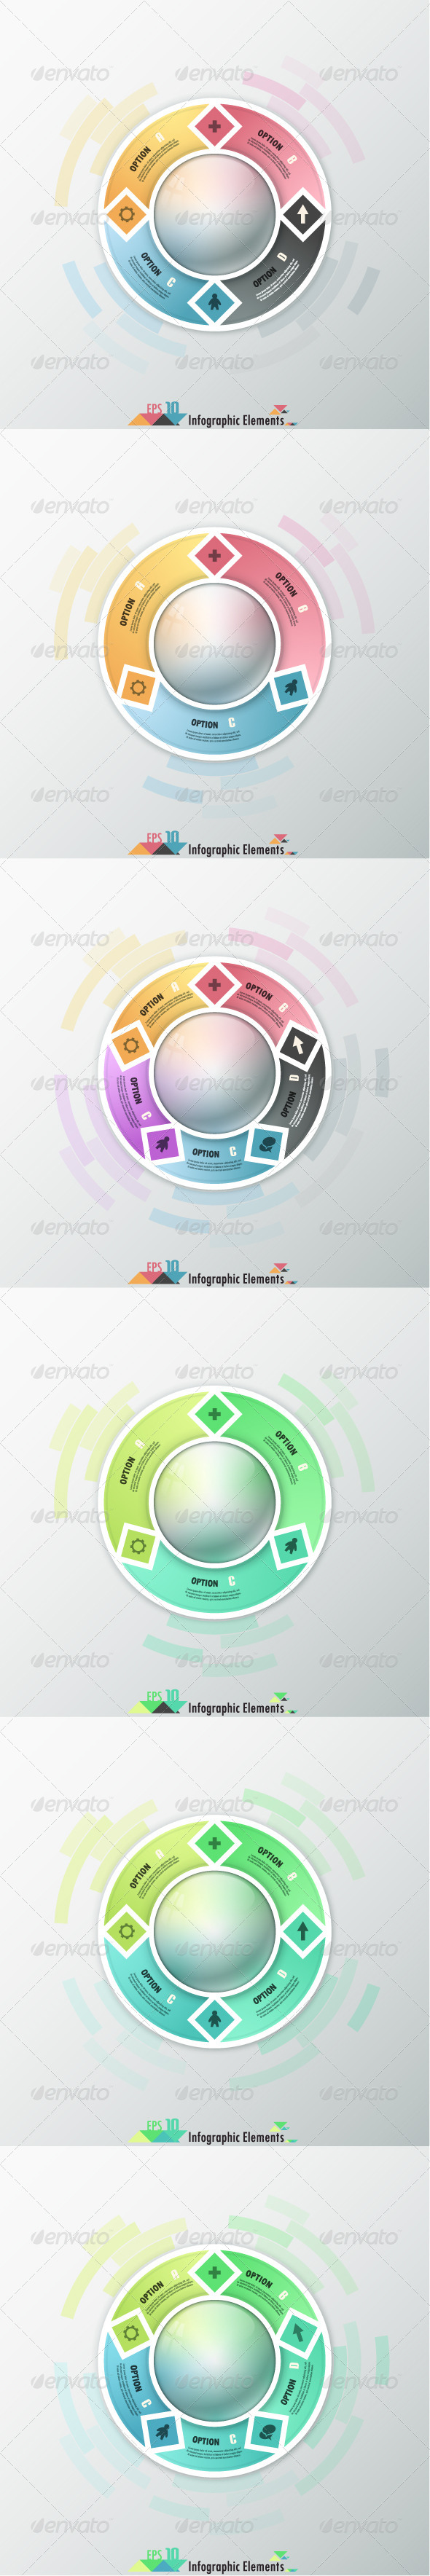 GraphicRiver Modern Infographic Options Banner 6 Versions 7375591